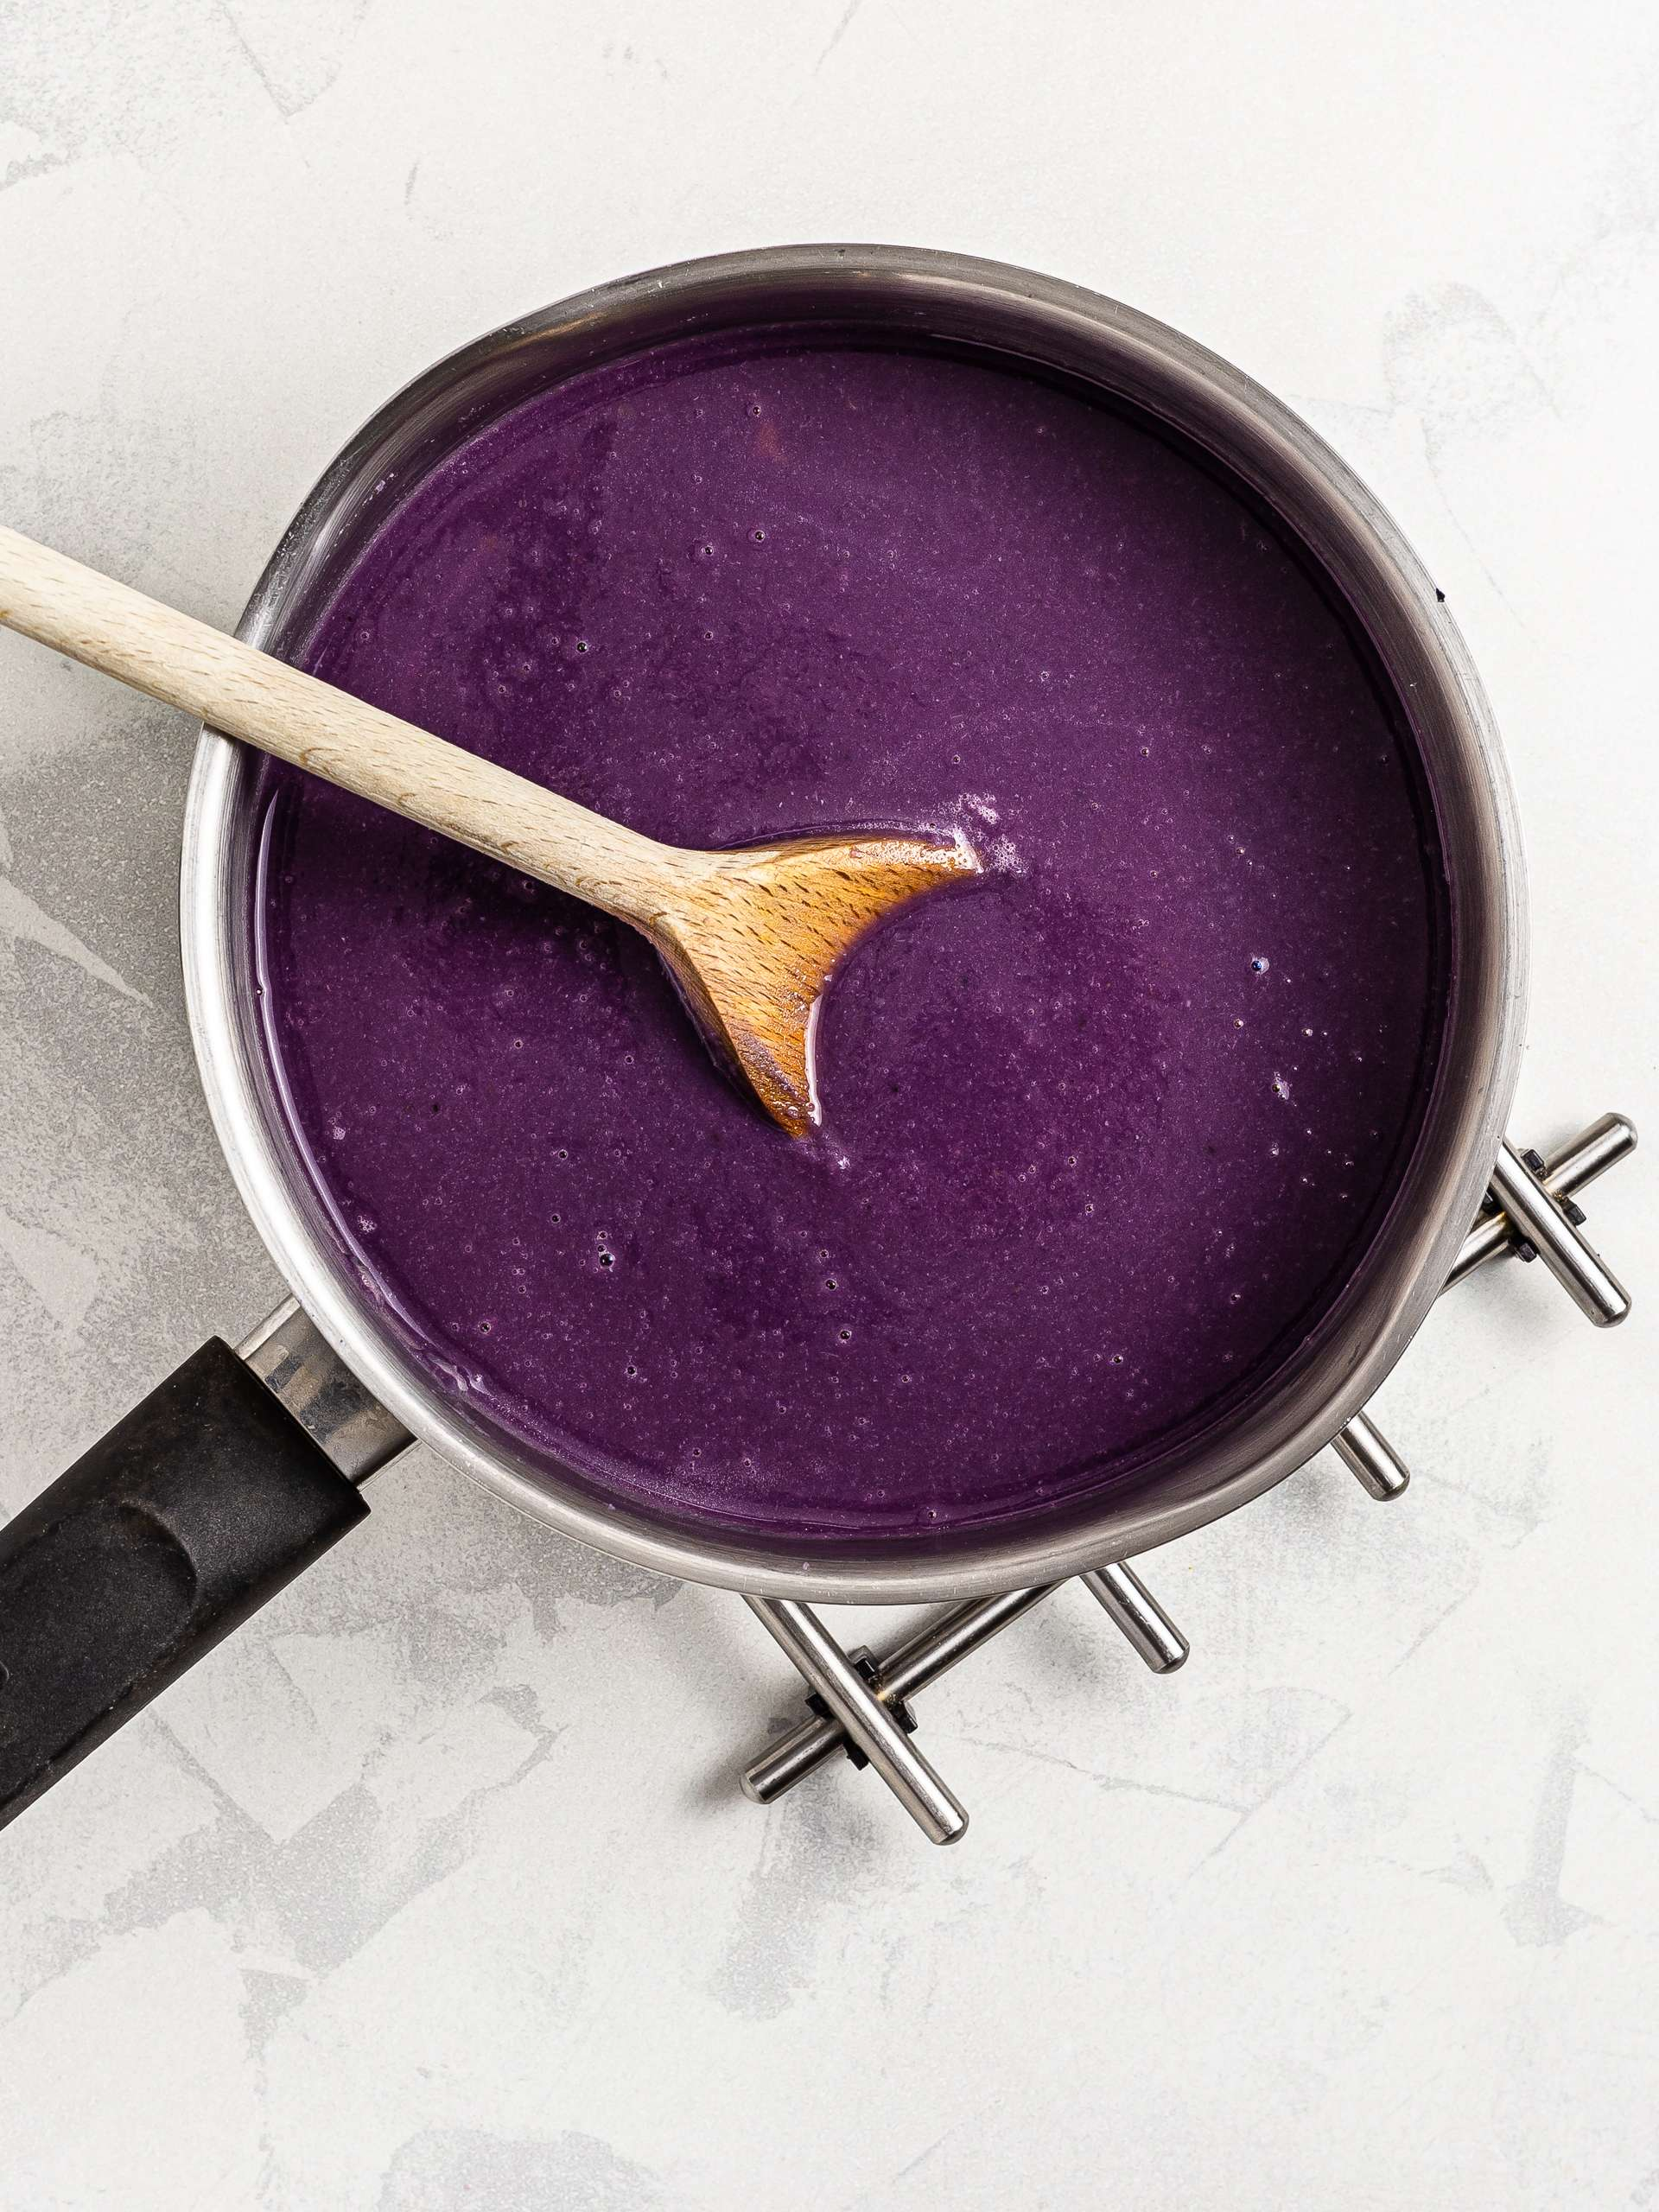 red cabbage soup blended into a velouté